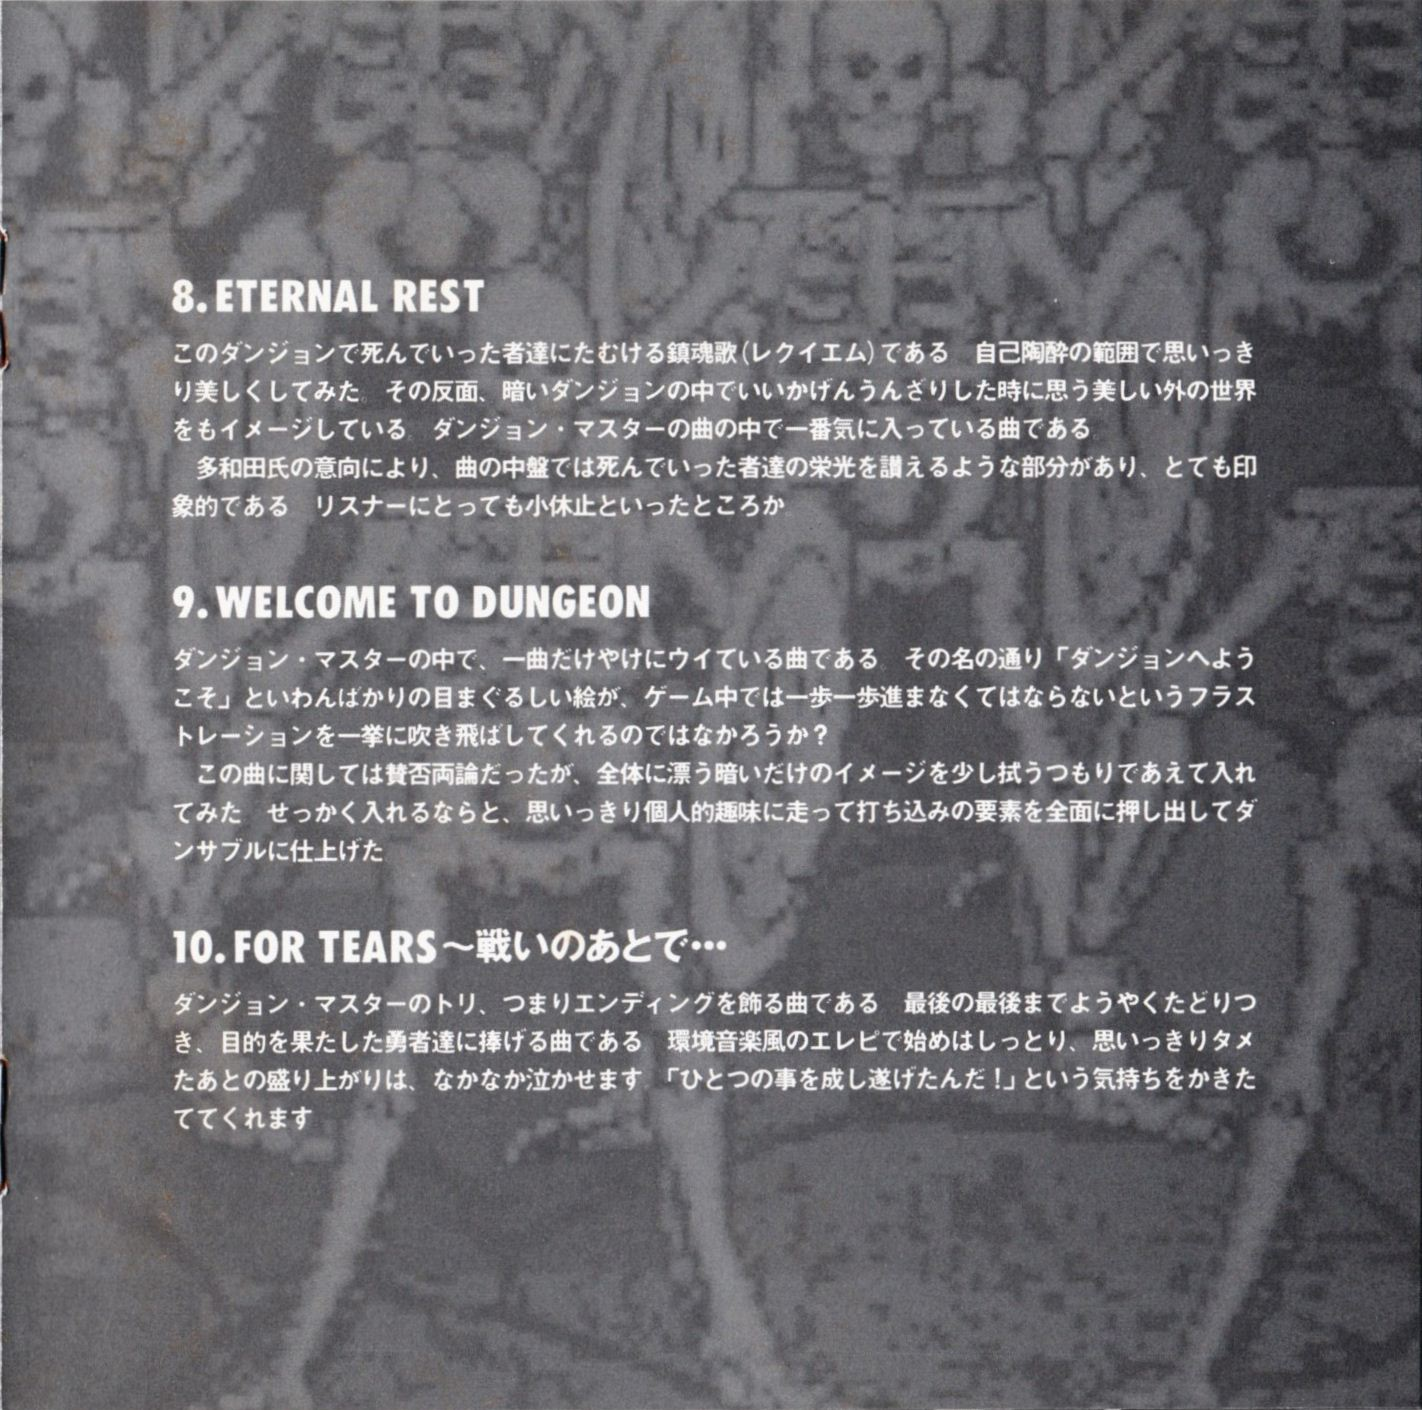 Audio CD - Super Dungeon Master - JP - Booklet - Page 007 - Scan